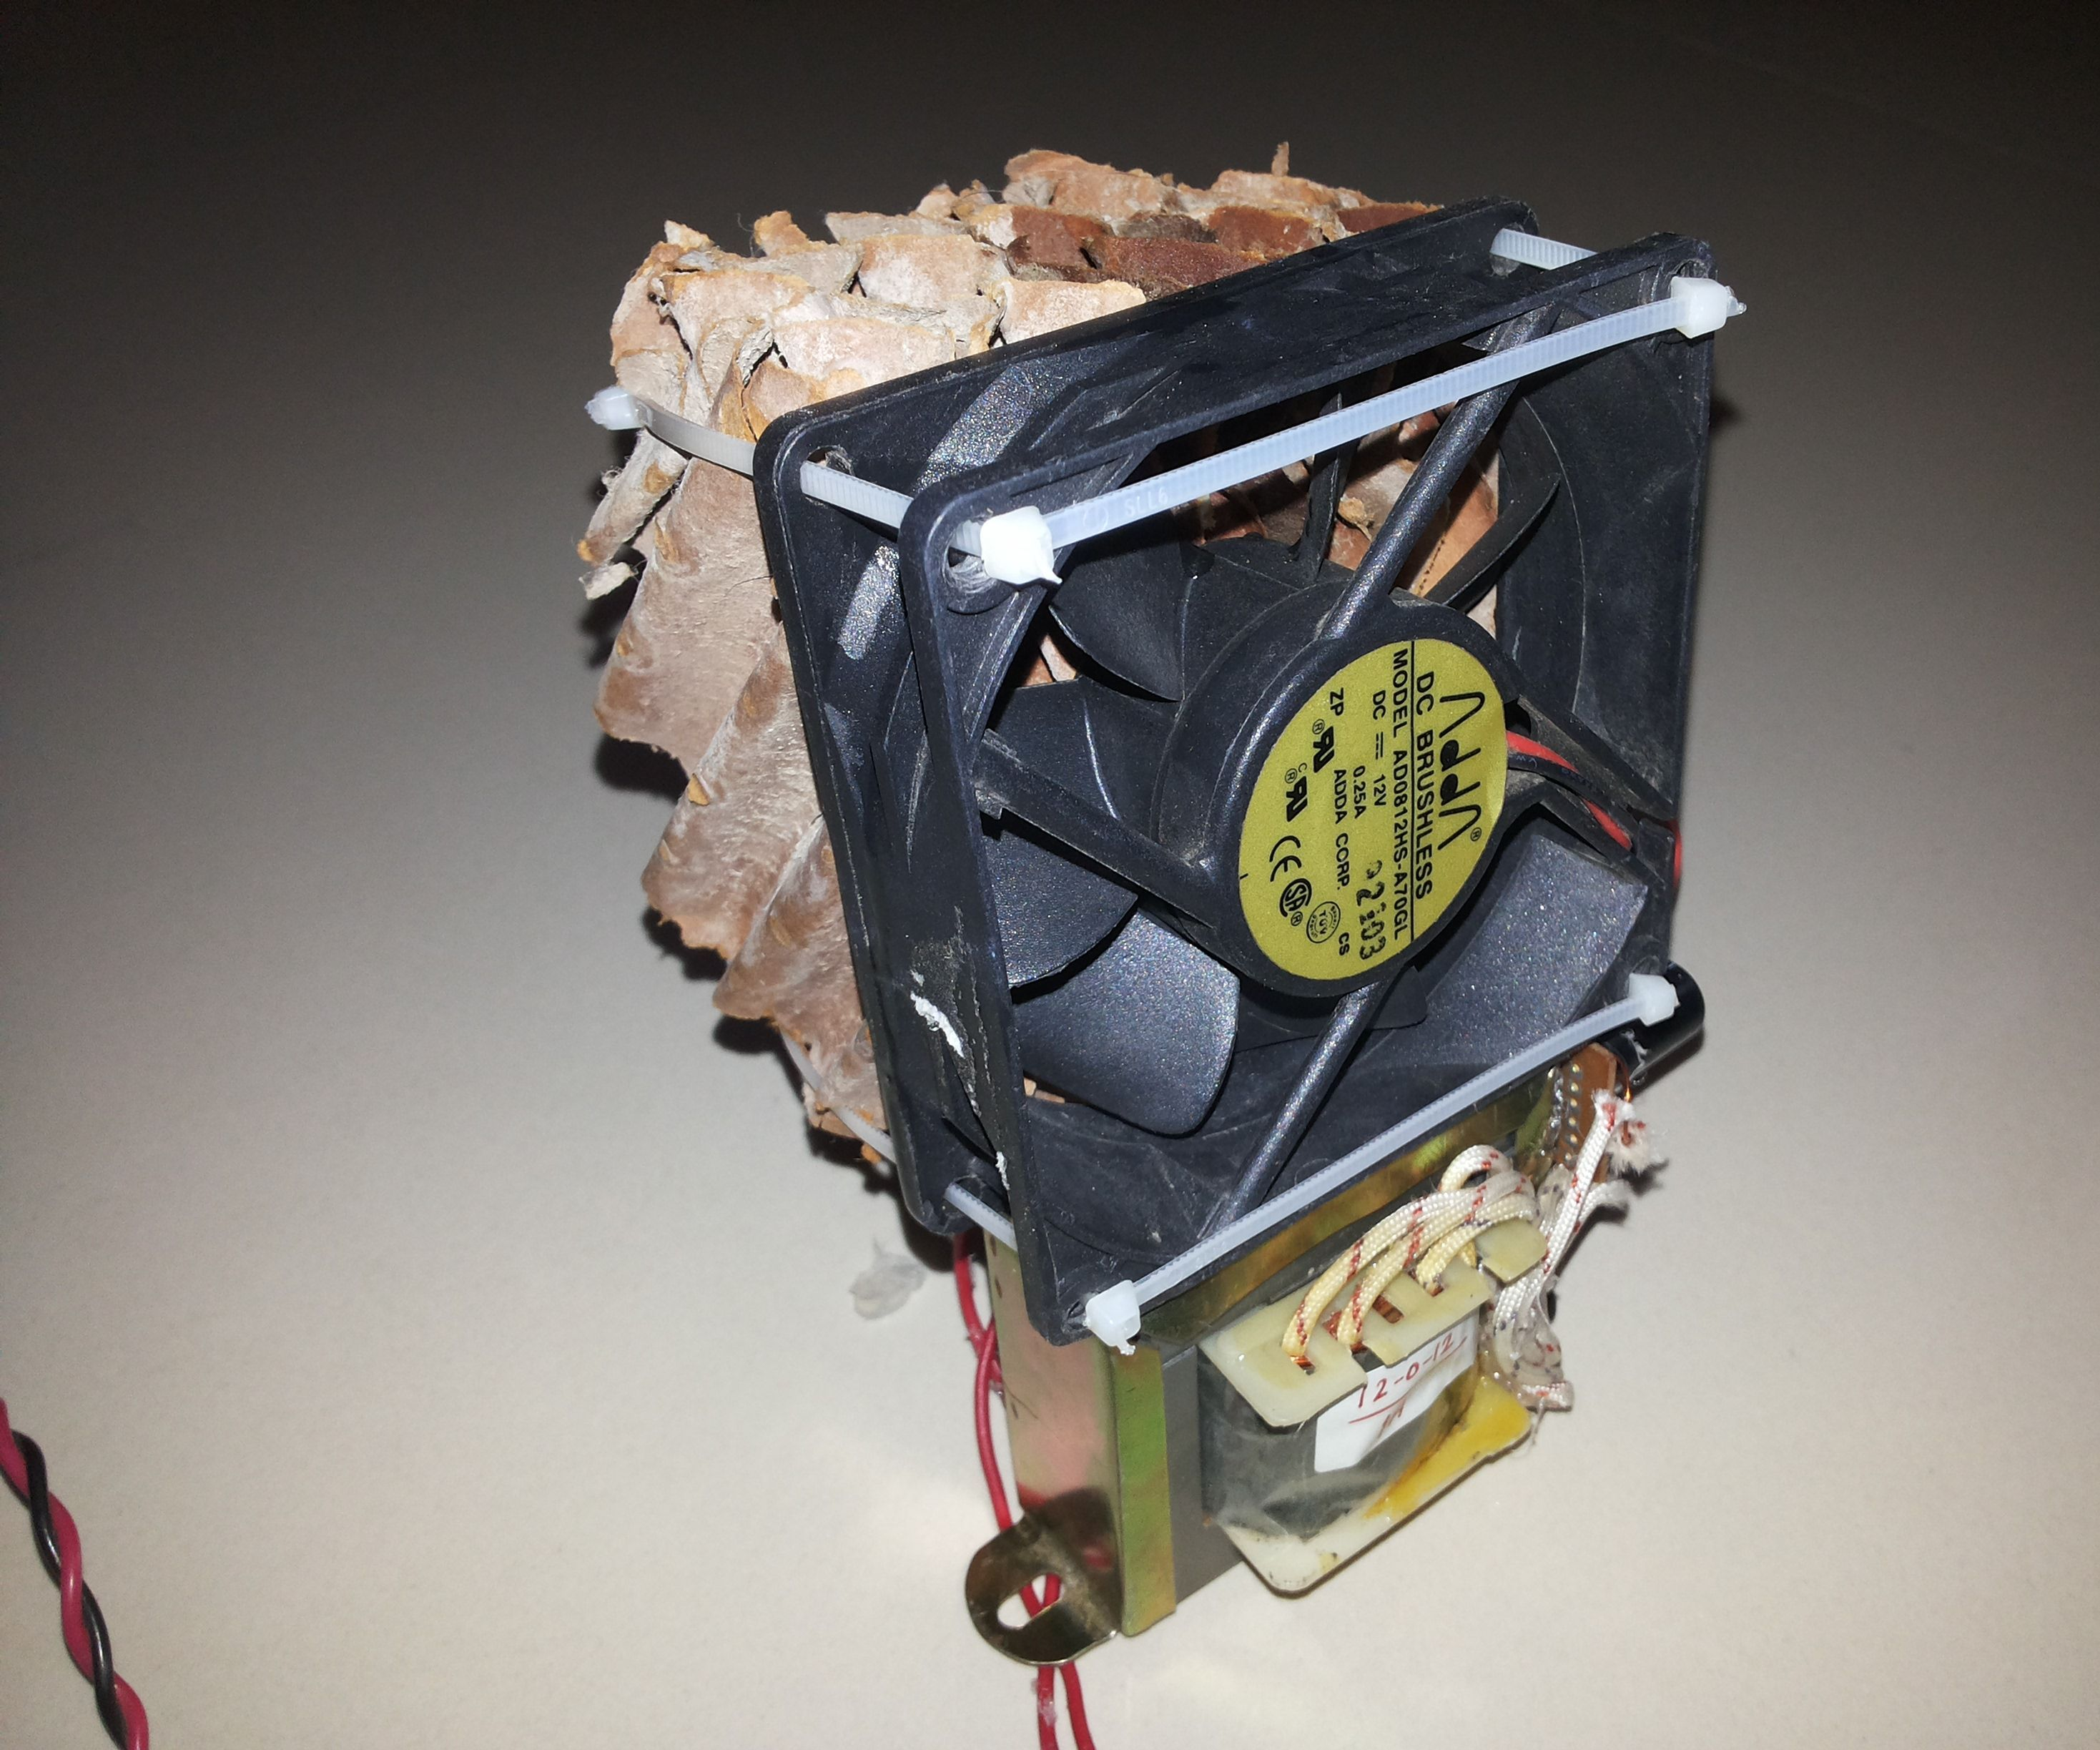 Mini Air Conditioner (A/C) from reused materials